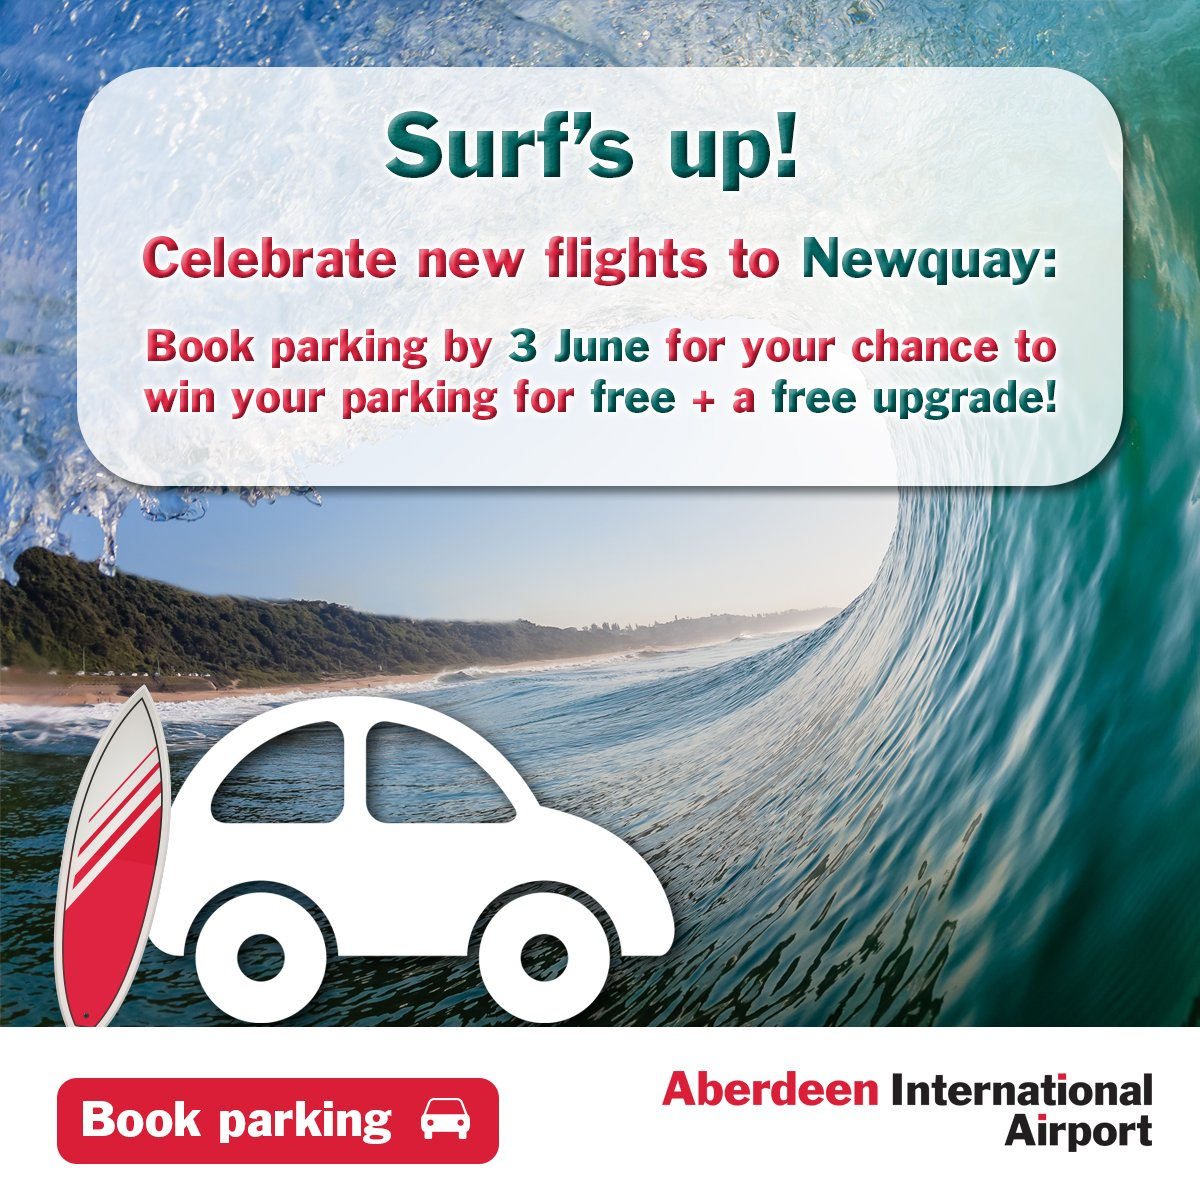 Celebrate new flights to Newquay! Book parking by 3 June & you could win it free + upgrade!